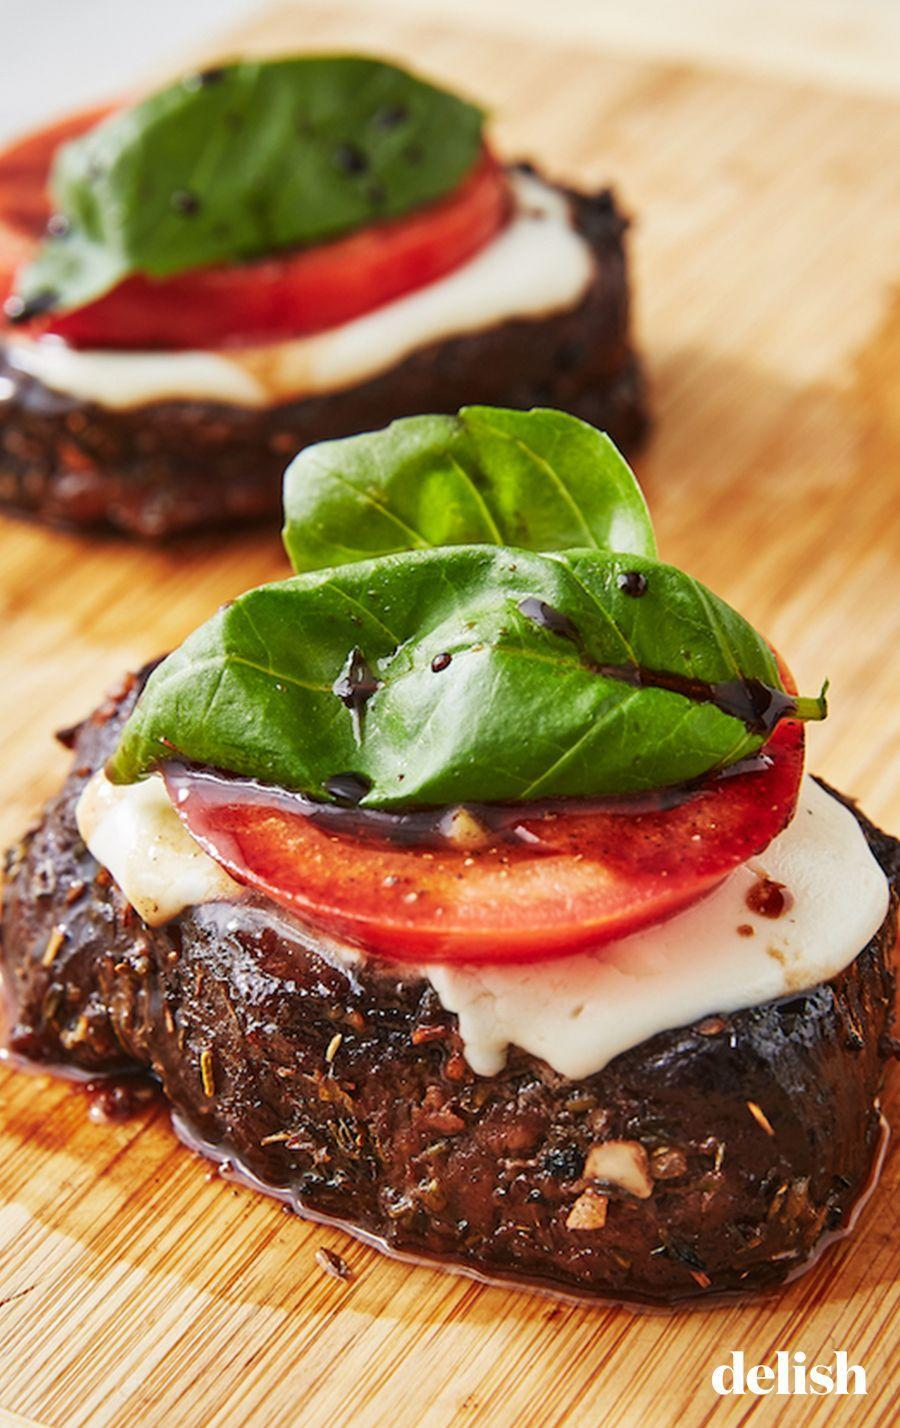 "<p>Take that leftover steak and top it with the world's best (and easiest!) salad for the mash-up dreams are made of.</p><p>Get the recipe from <a href=""https://www.delish.com/cooking/recipe-ideas/recipes/a48615/caprese-steak-recipe/"" rel=""nofollow noopener"" target=""_blank"" data-ylk=""slk:Delish"" class=""link rapid-noclick-resp"">Delish</a>.</p>"